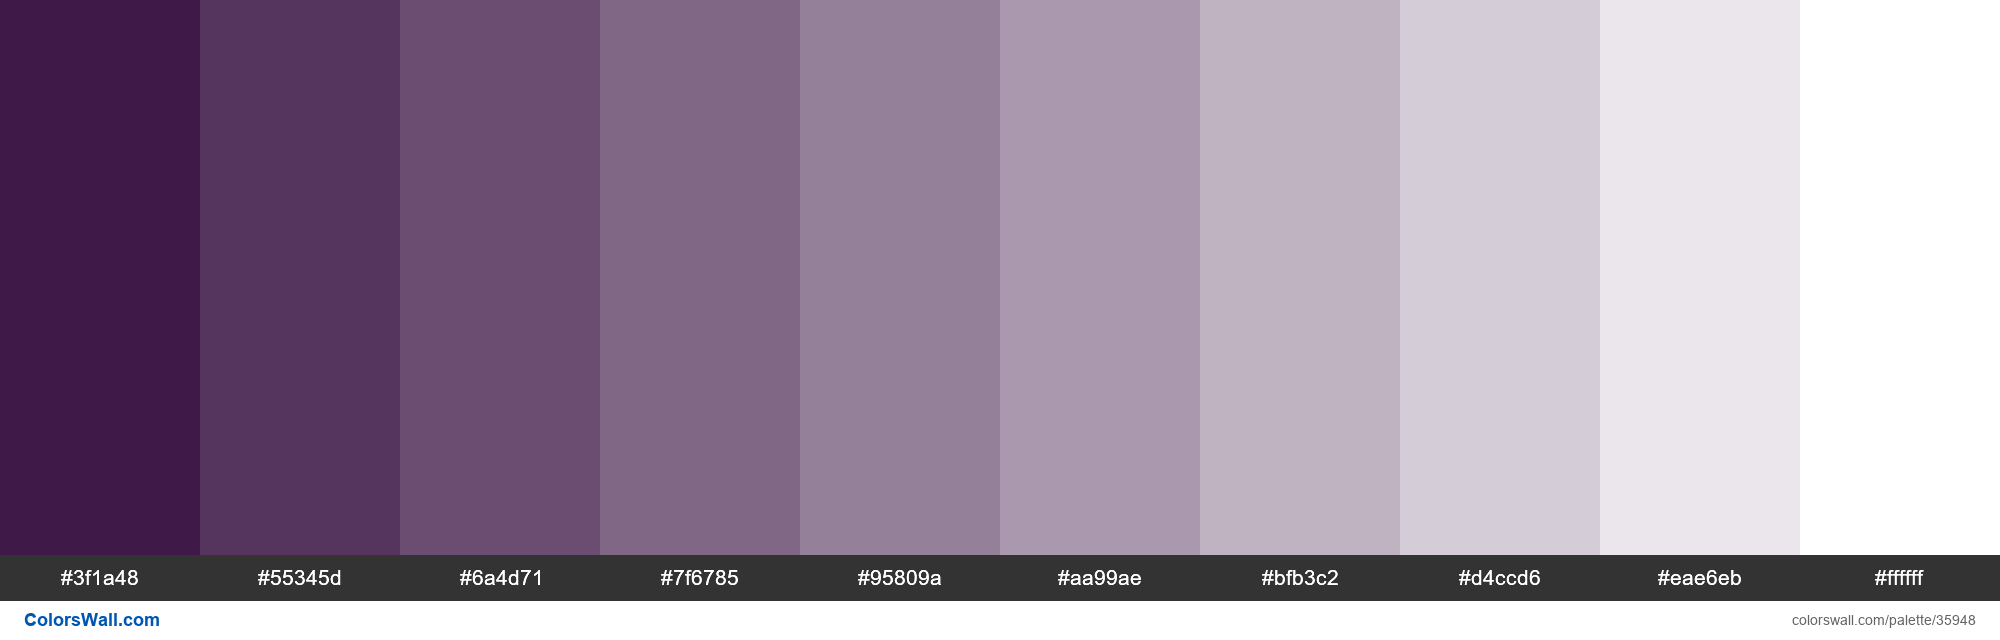 Tints Xkcd Color Very Dark Purple 2a0134 Hex In 2020 Royal Purple Color Tints Purple Color